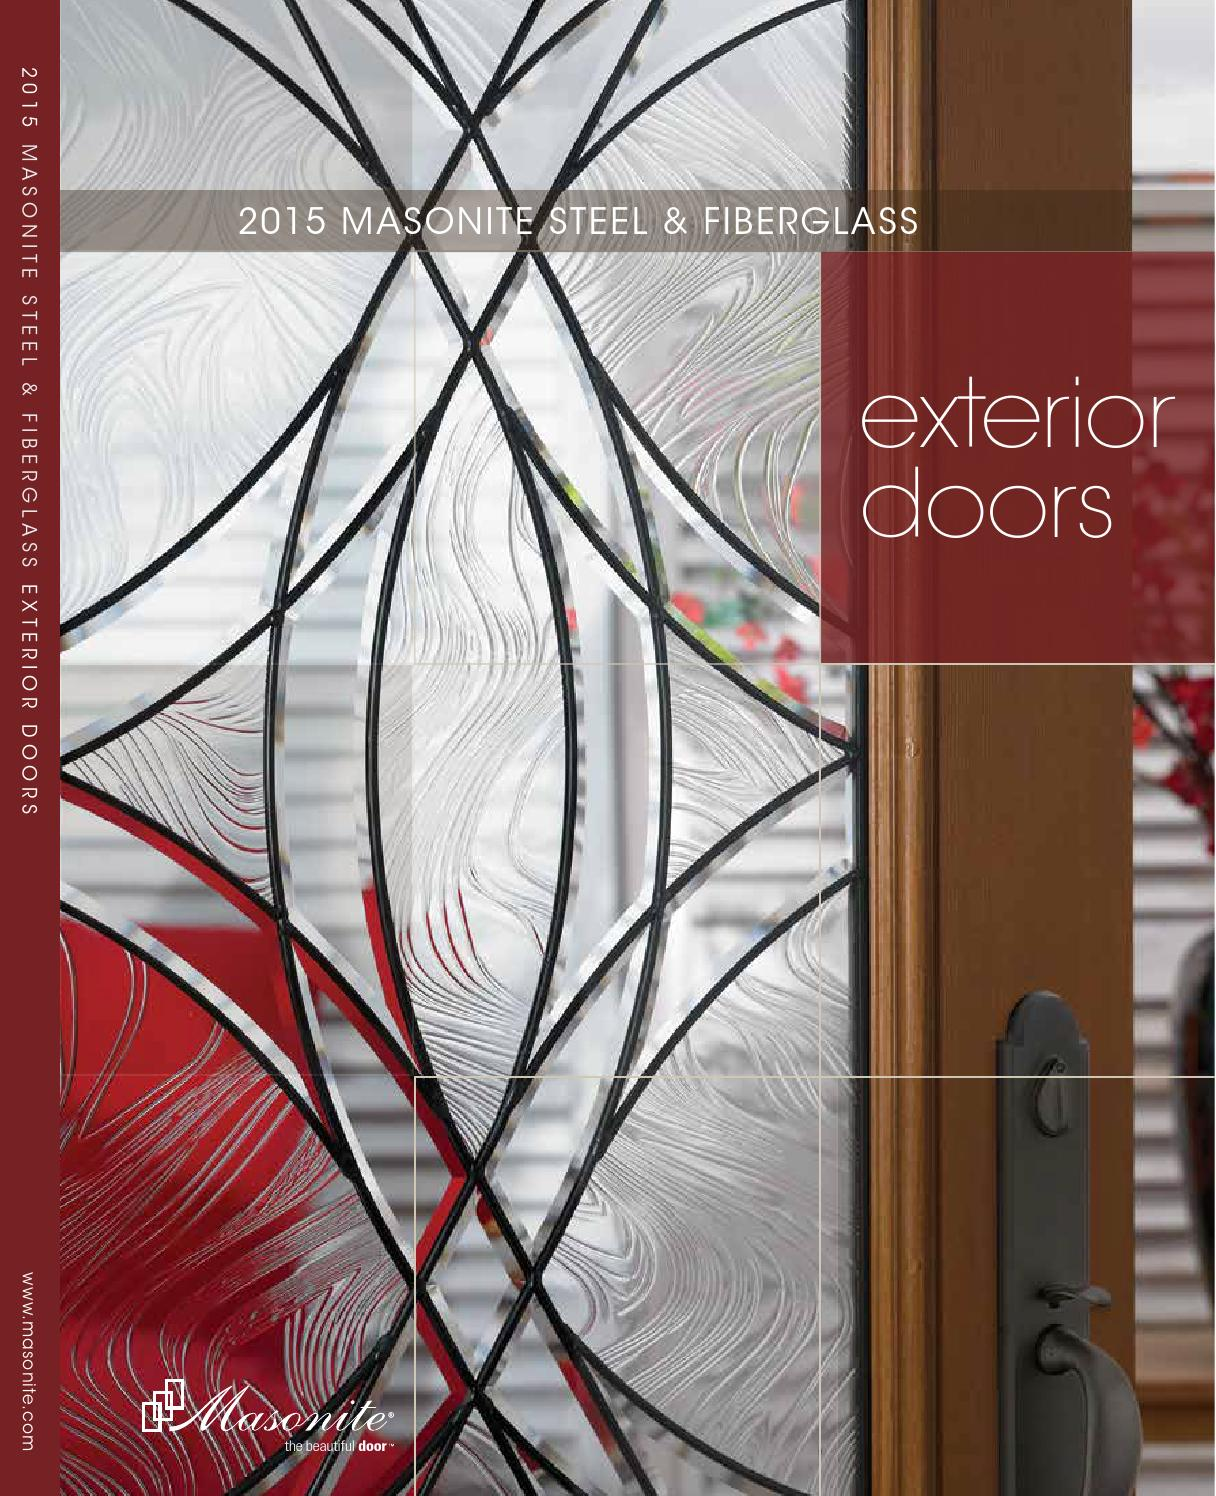 1496 #722C27 2015 Masonite Exterior Door Catalog By Meek Lumber Company Issuu save image Masonite Exterior Doors 39571216